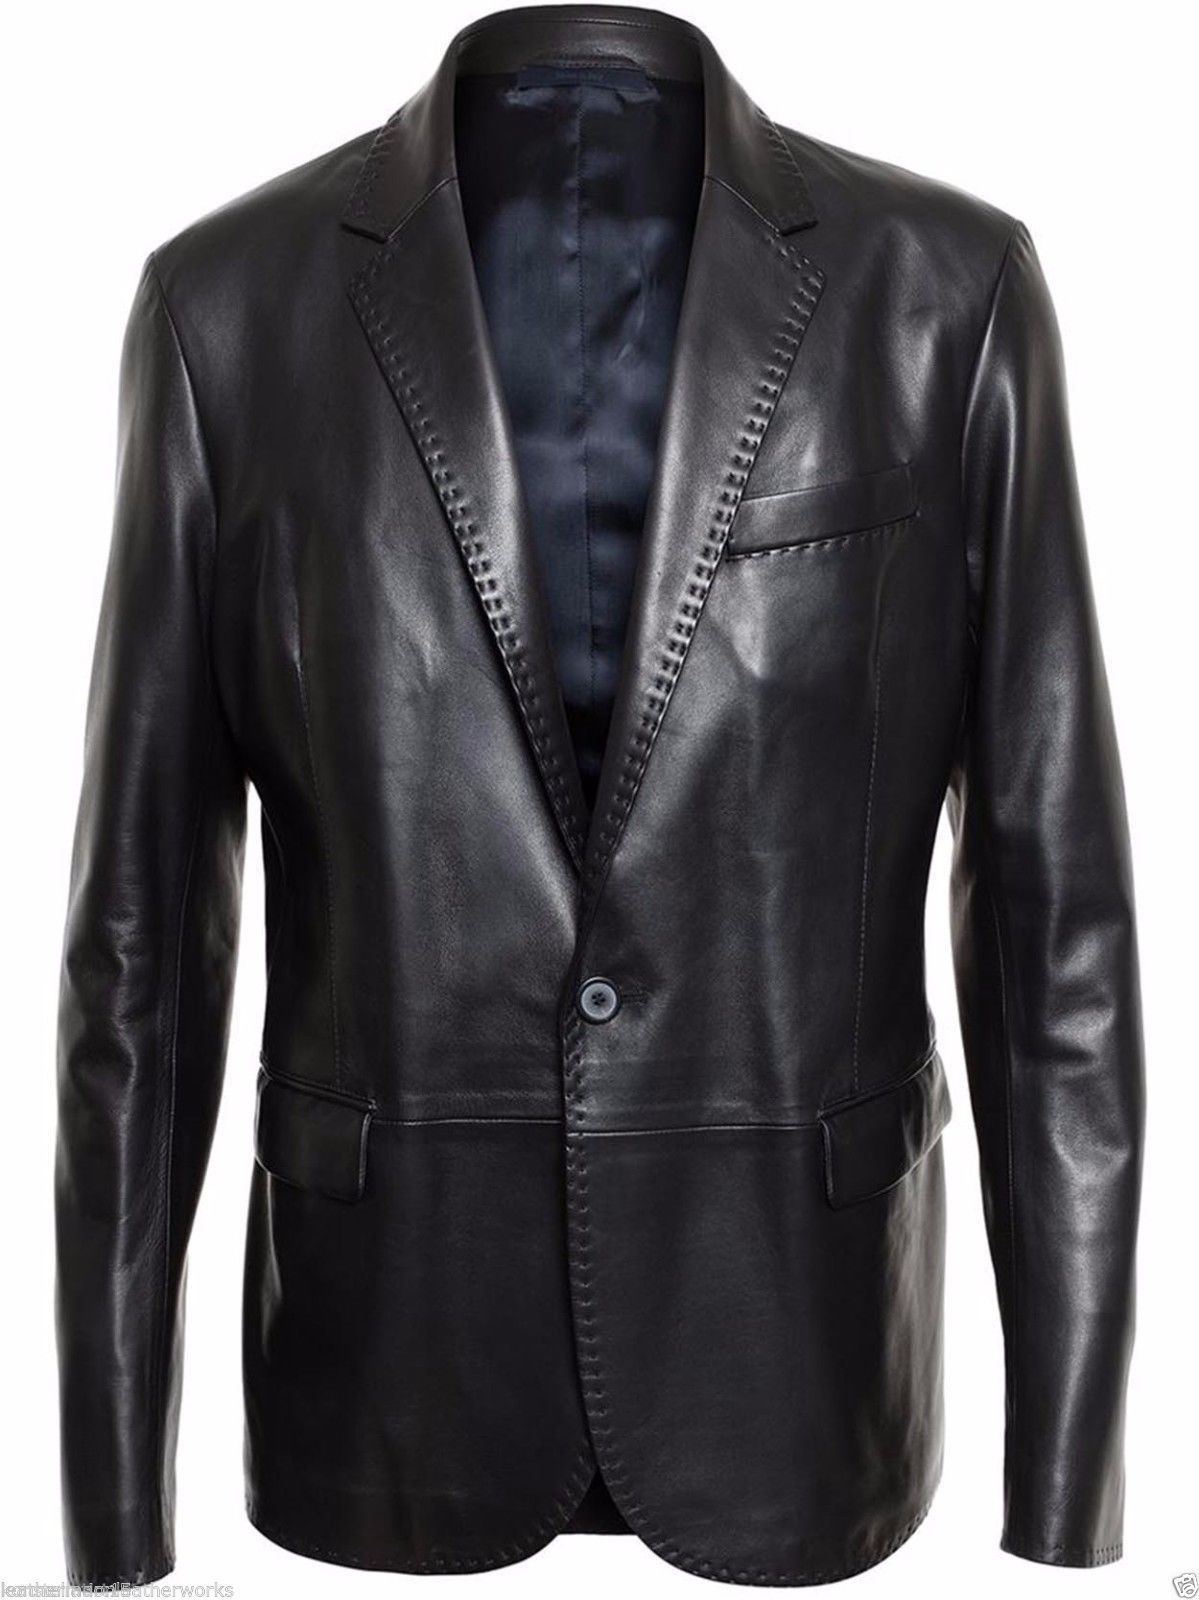 66a01f7ea829a Coats and Jackets 57988  Men S Genuine Soft Lambskin Slim Fit Black Leather  Blazer Jacket Coat -  BUY IT NOW ONLY   80.99 on eBay!